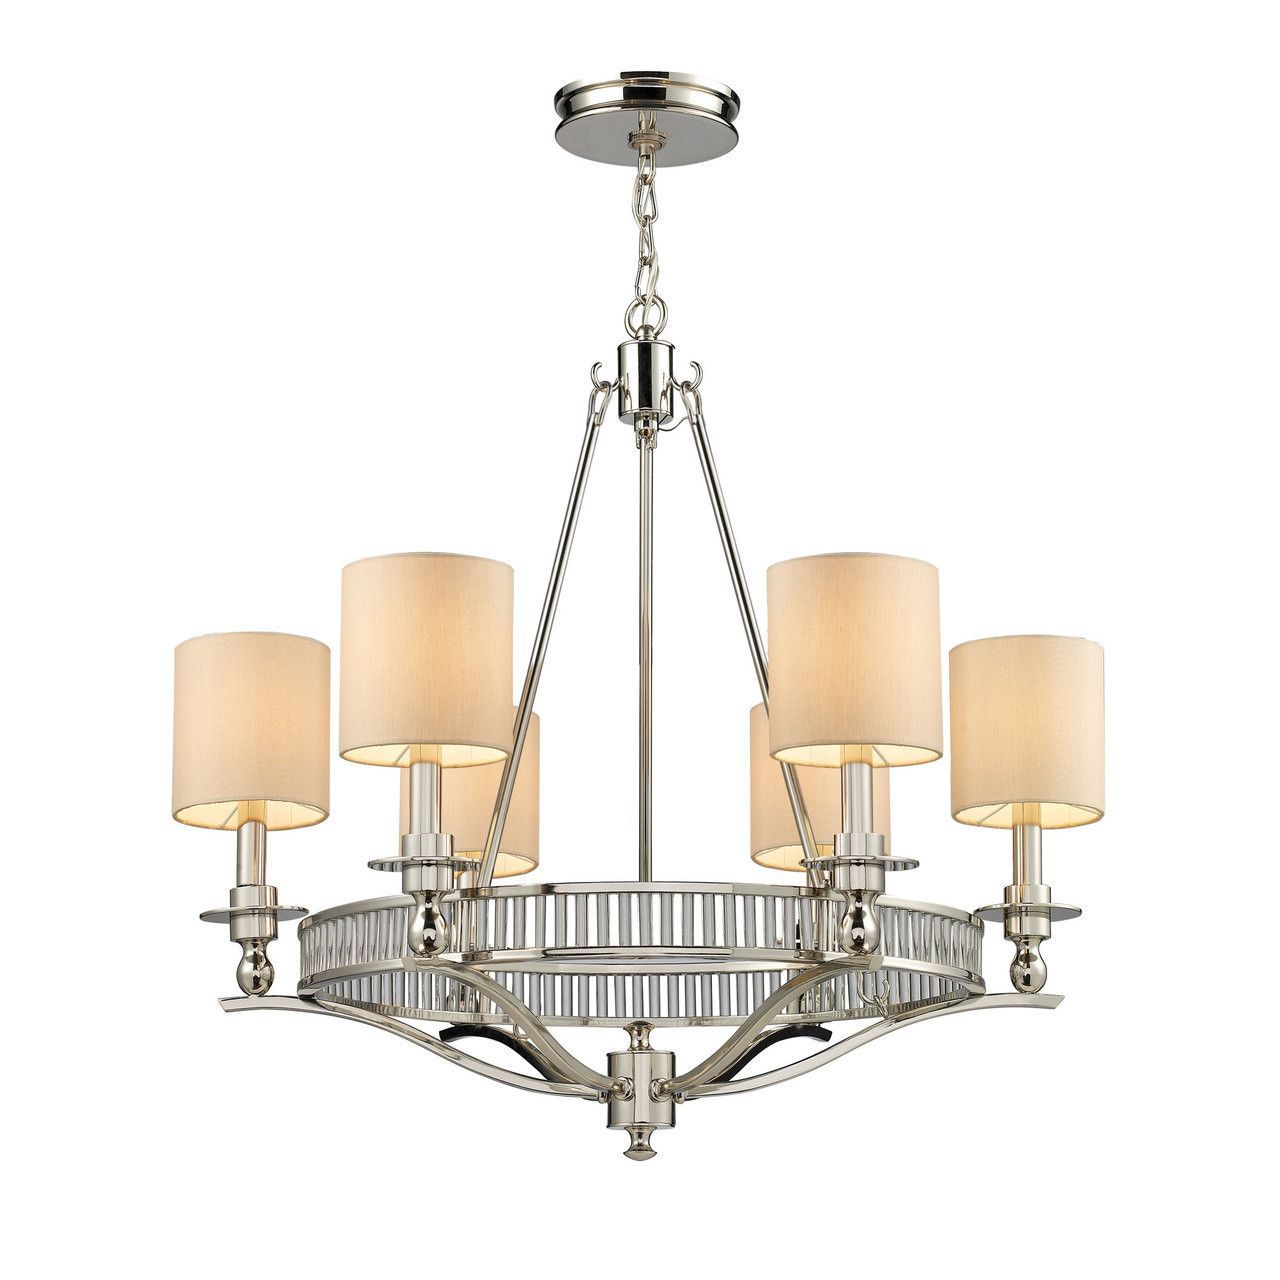 Easton 6 light chandelier in polished nickel 10167 6